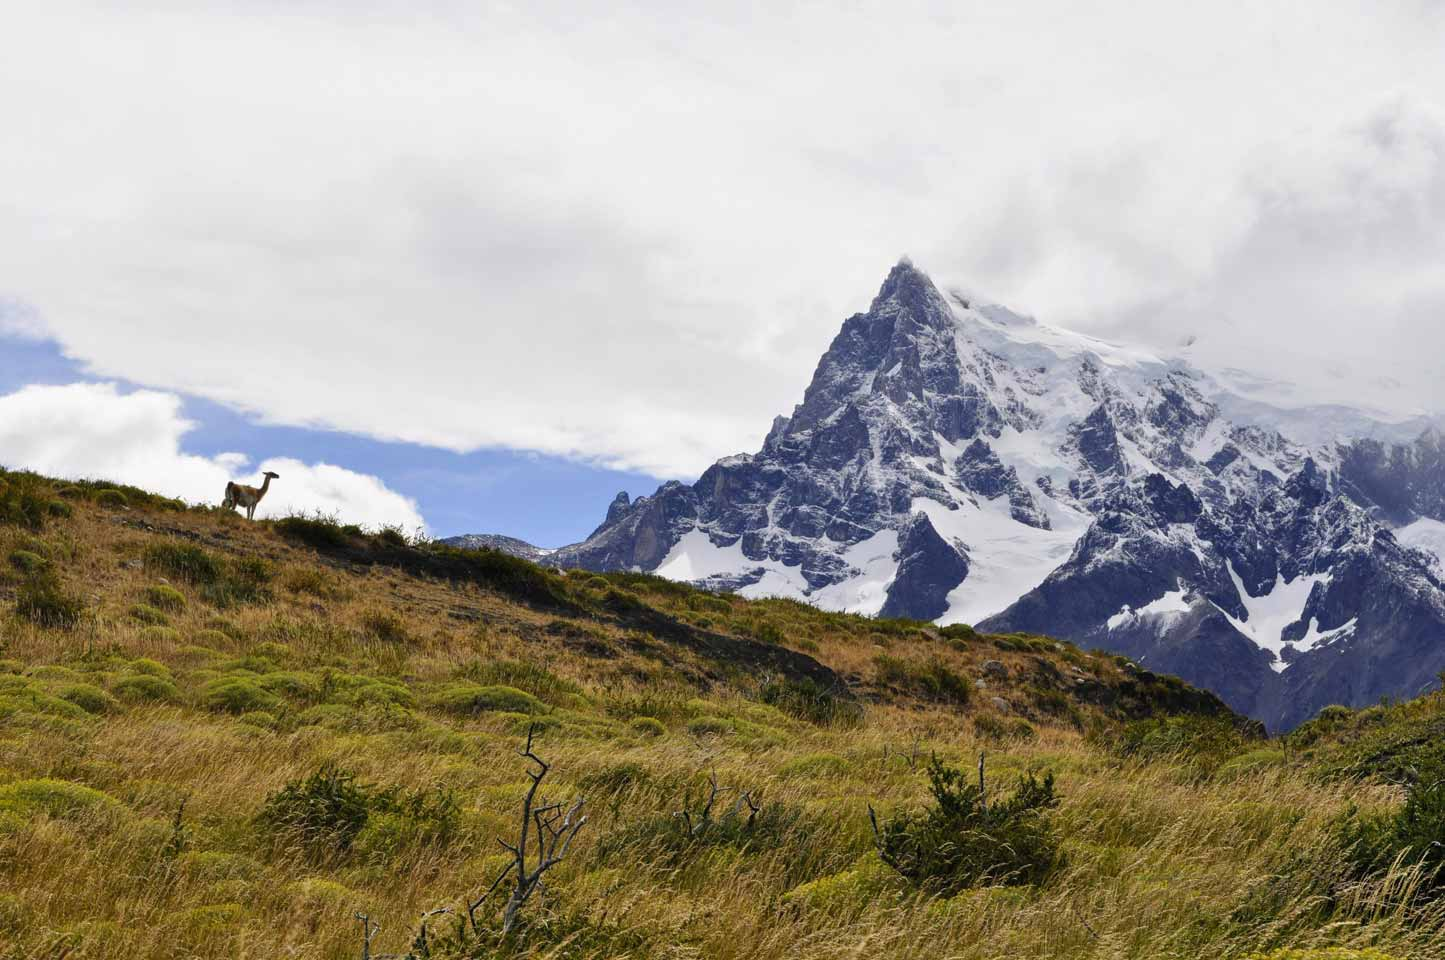 TDF-Guanaco-In-Grass-In-Front-Of-Mountain-5-11-20